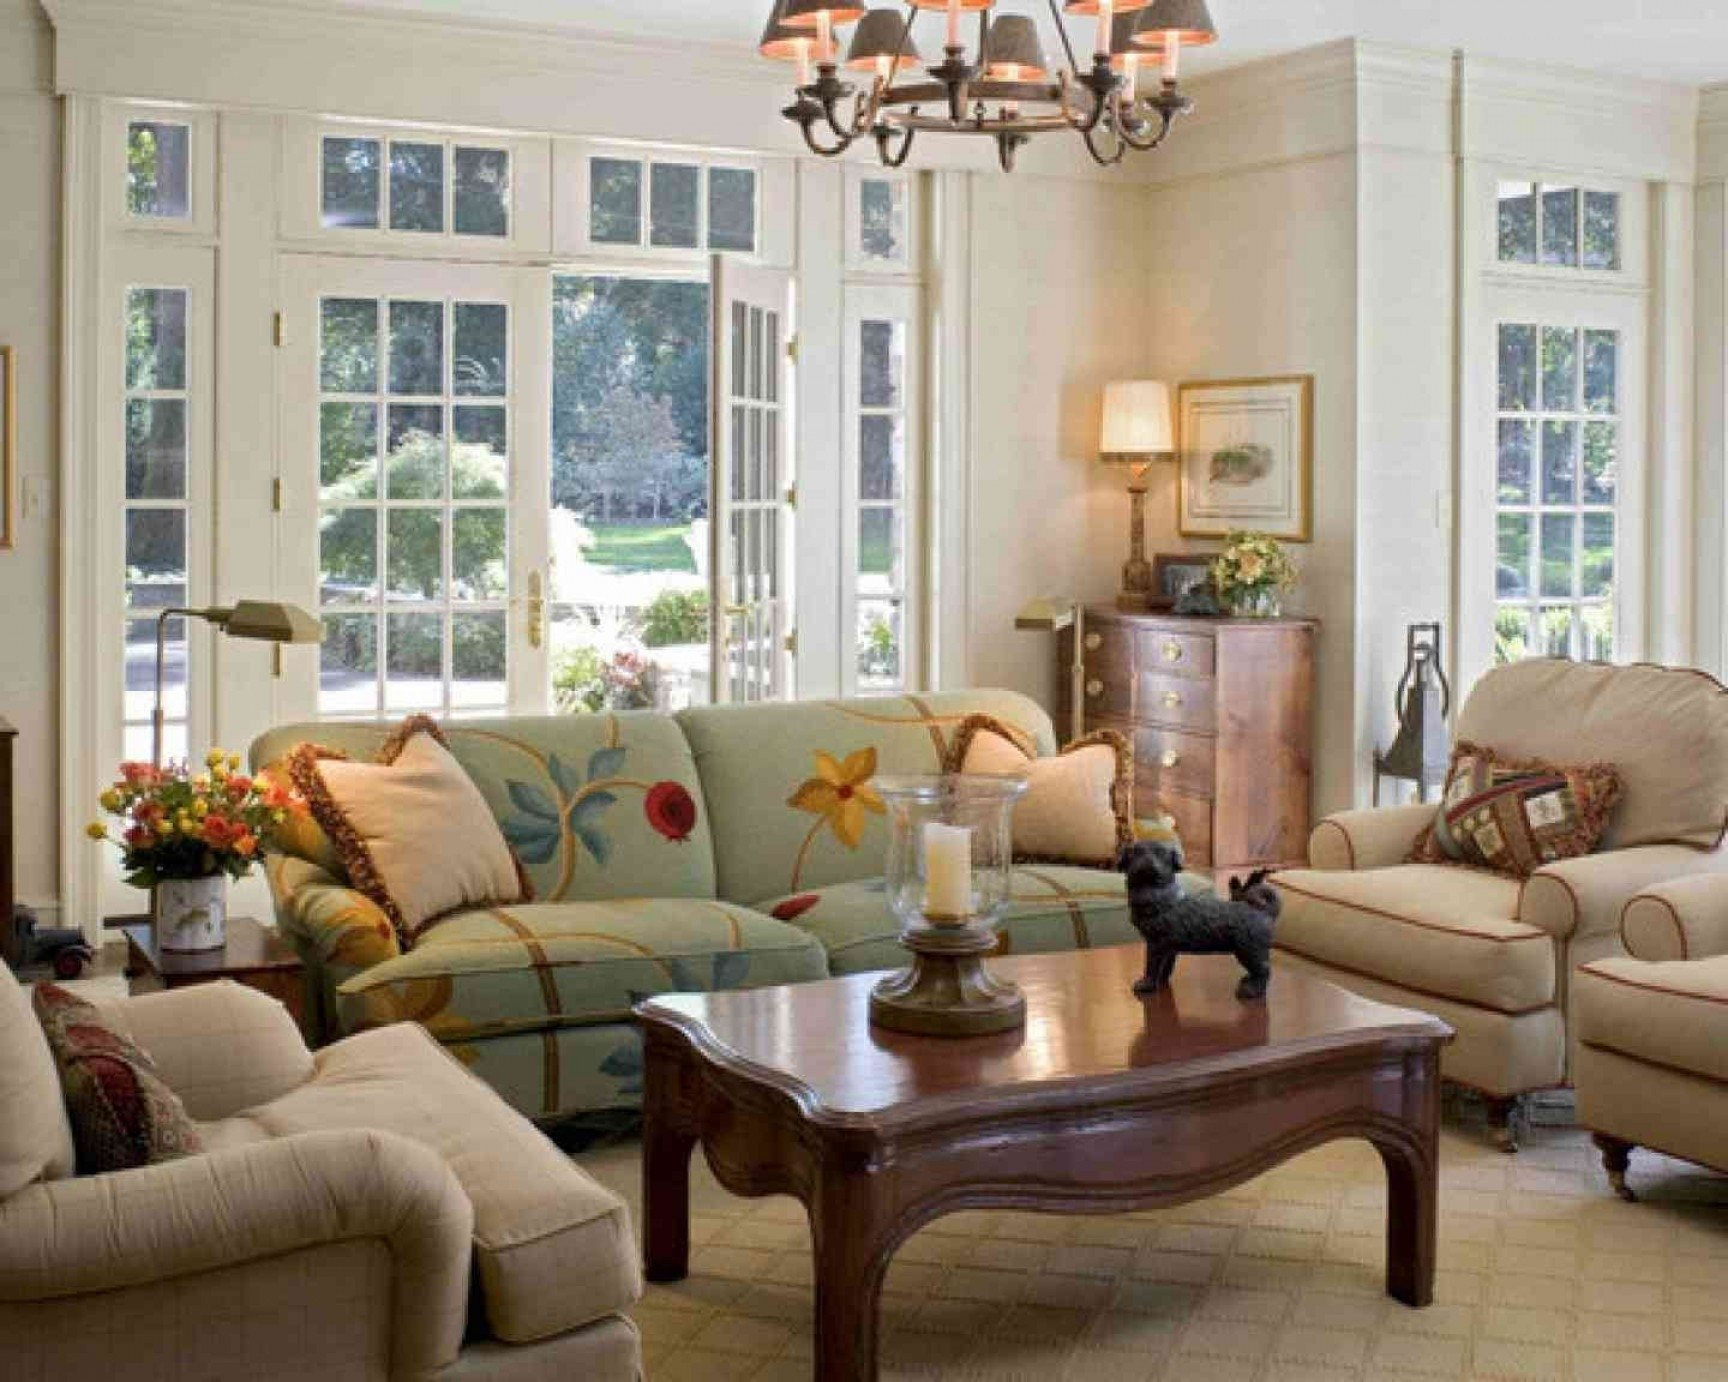 10 Fabulous Country Living Room Decorating Ideas living room french country decorating ideas for living room 2 2020